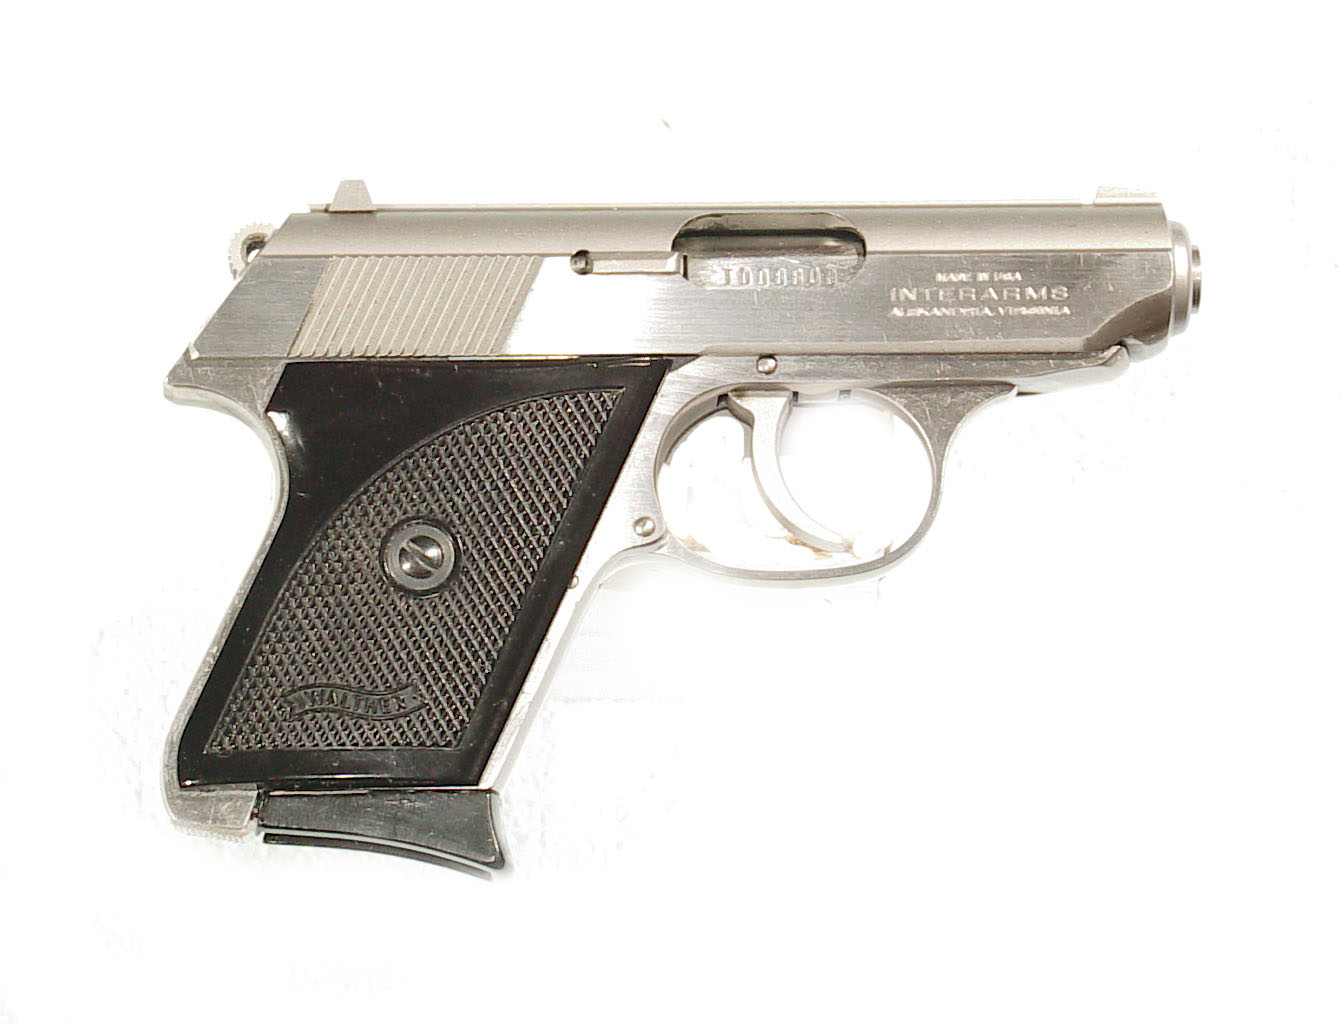 WALTHER TPH AUTO PISTOL IN IT'S